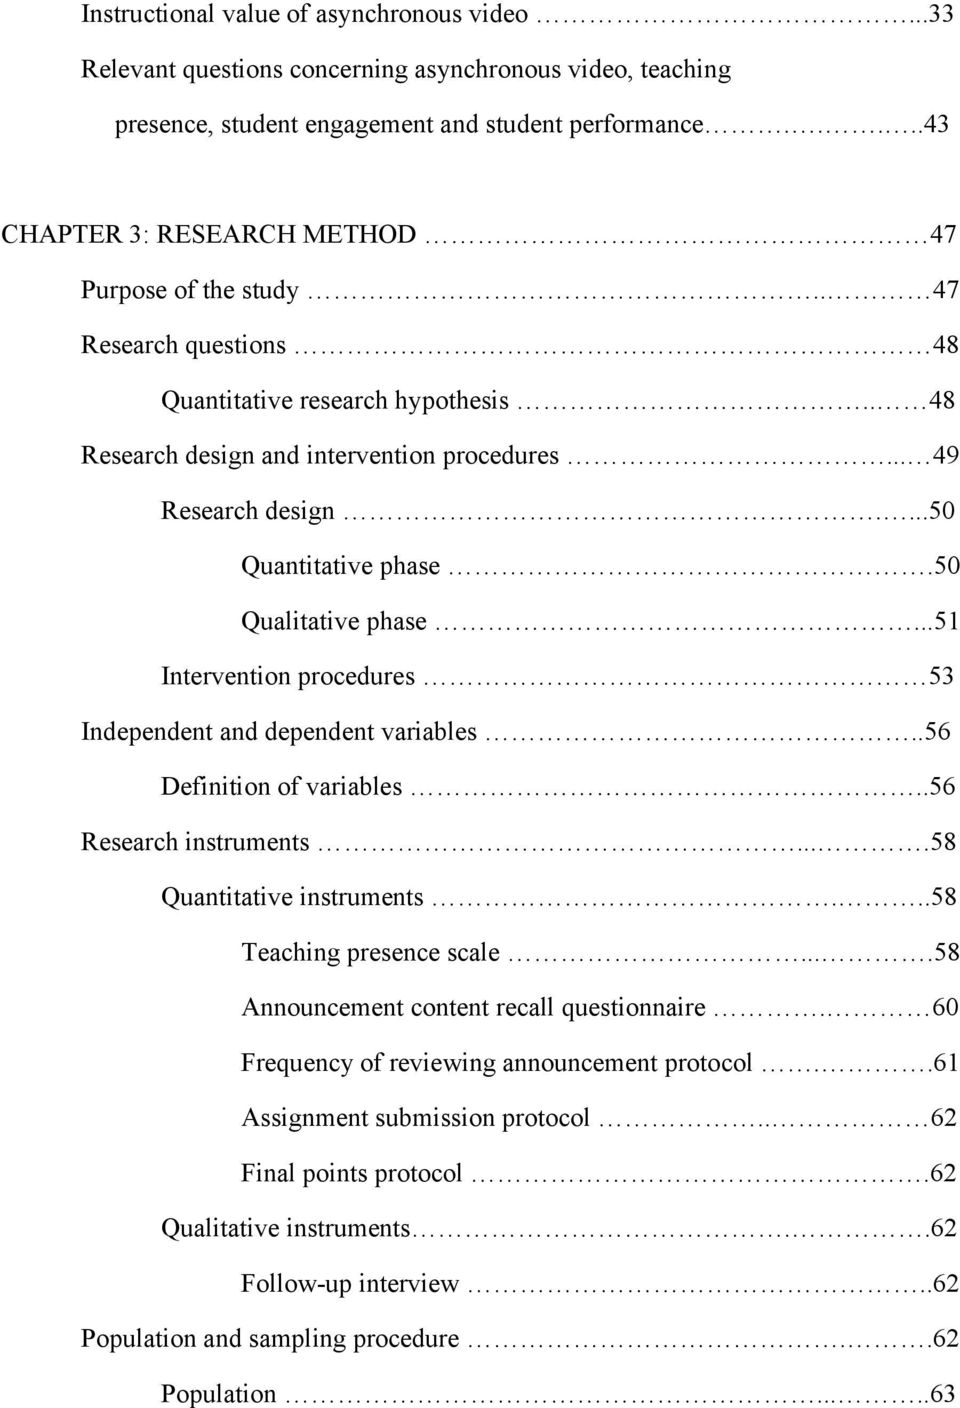 qualitative research interview protocol template - examining the role of the introductory video in the